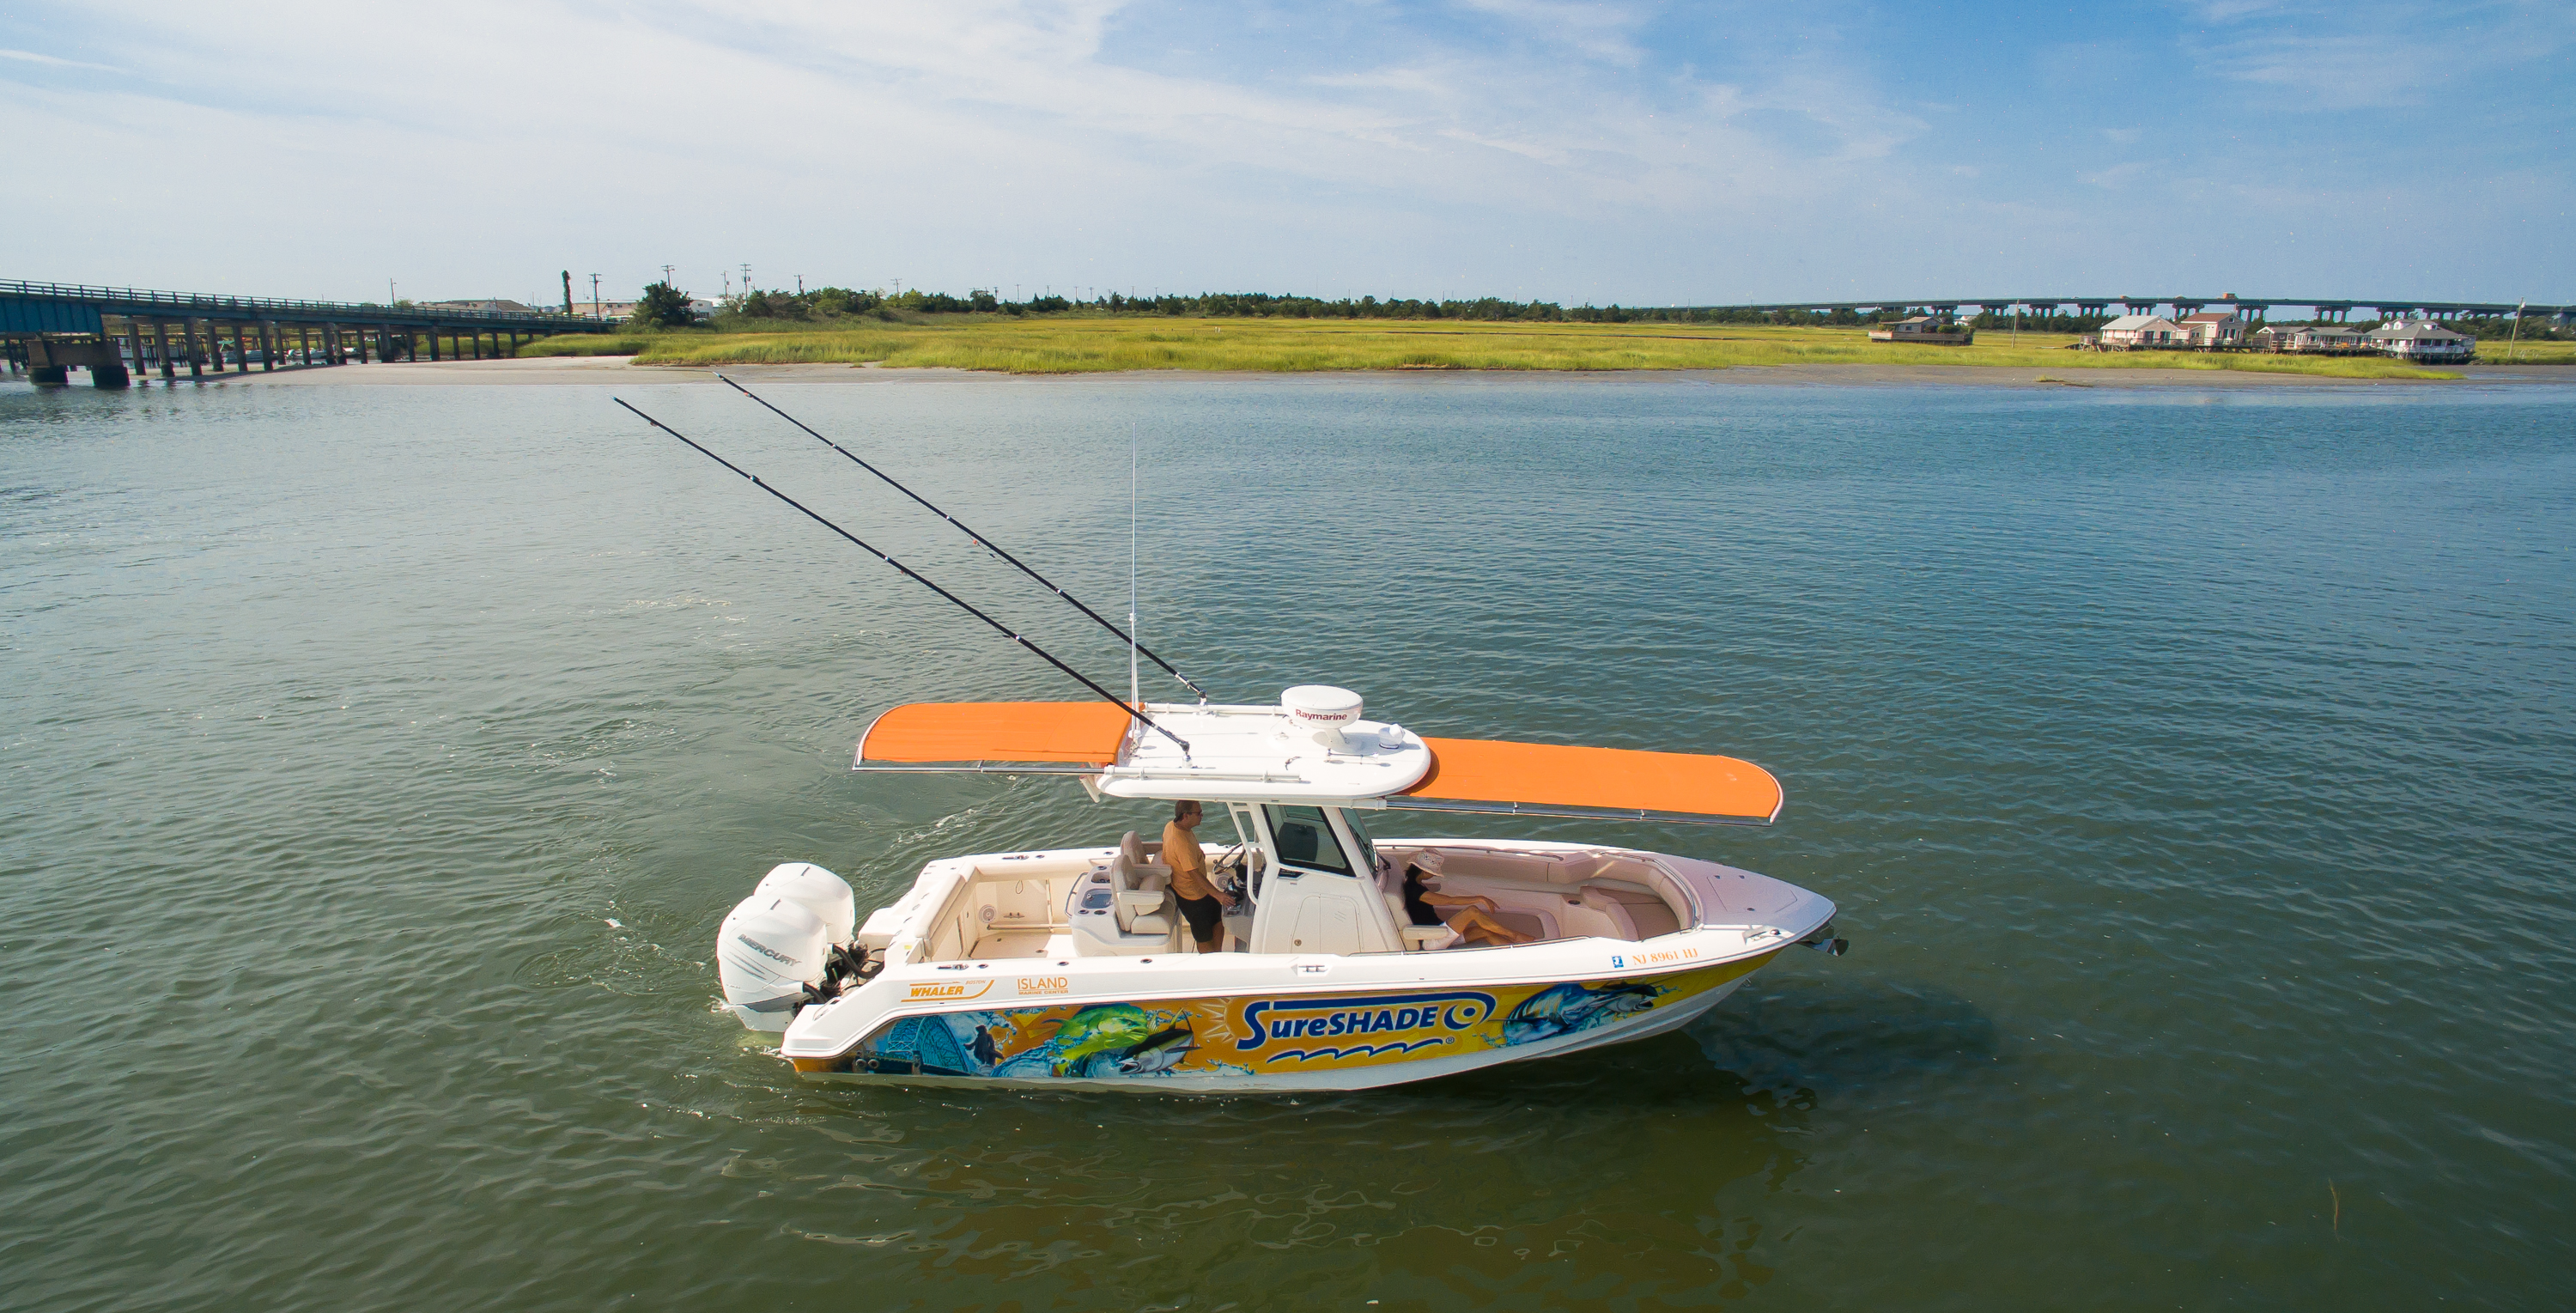 Sureshade Extending The Experience Telescoping Boat Shades